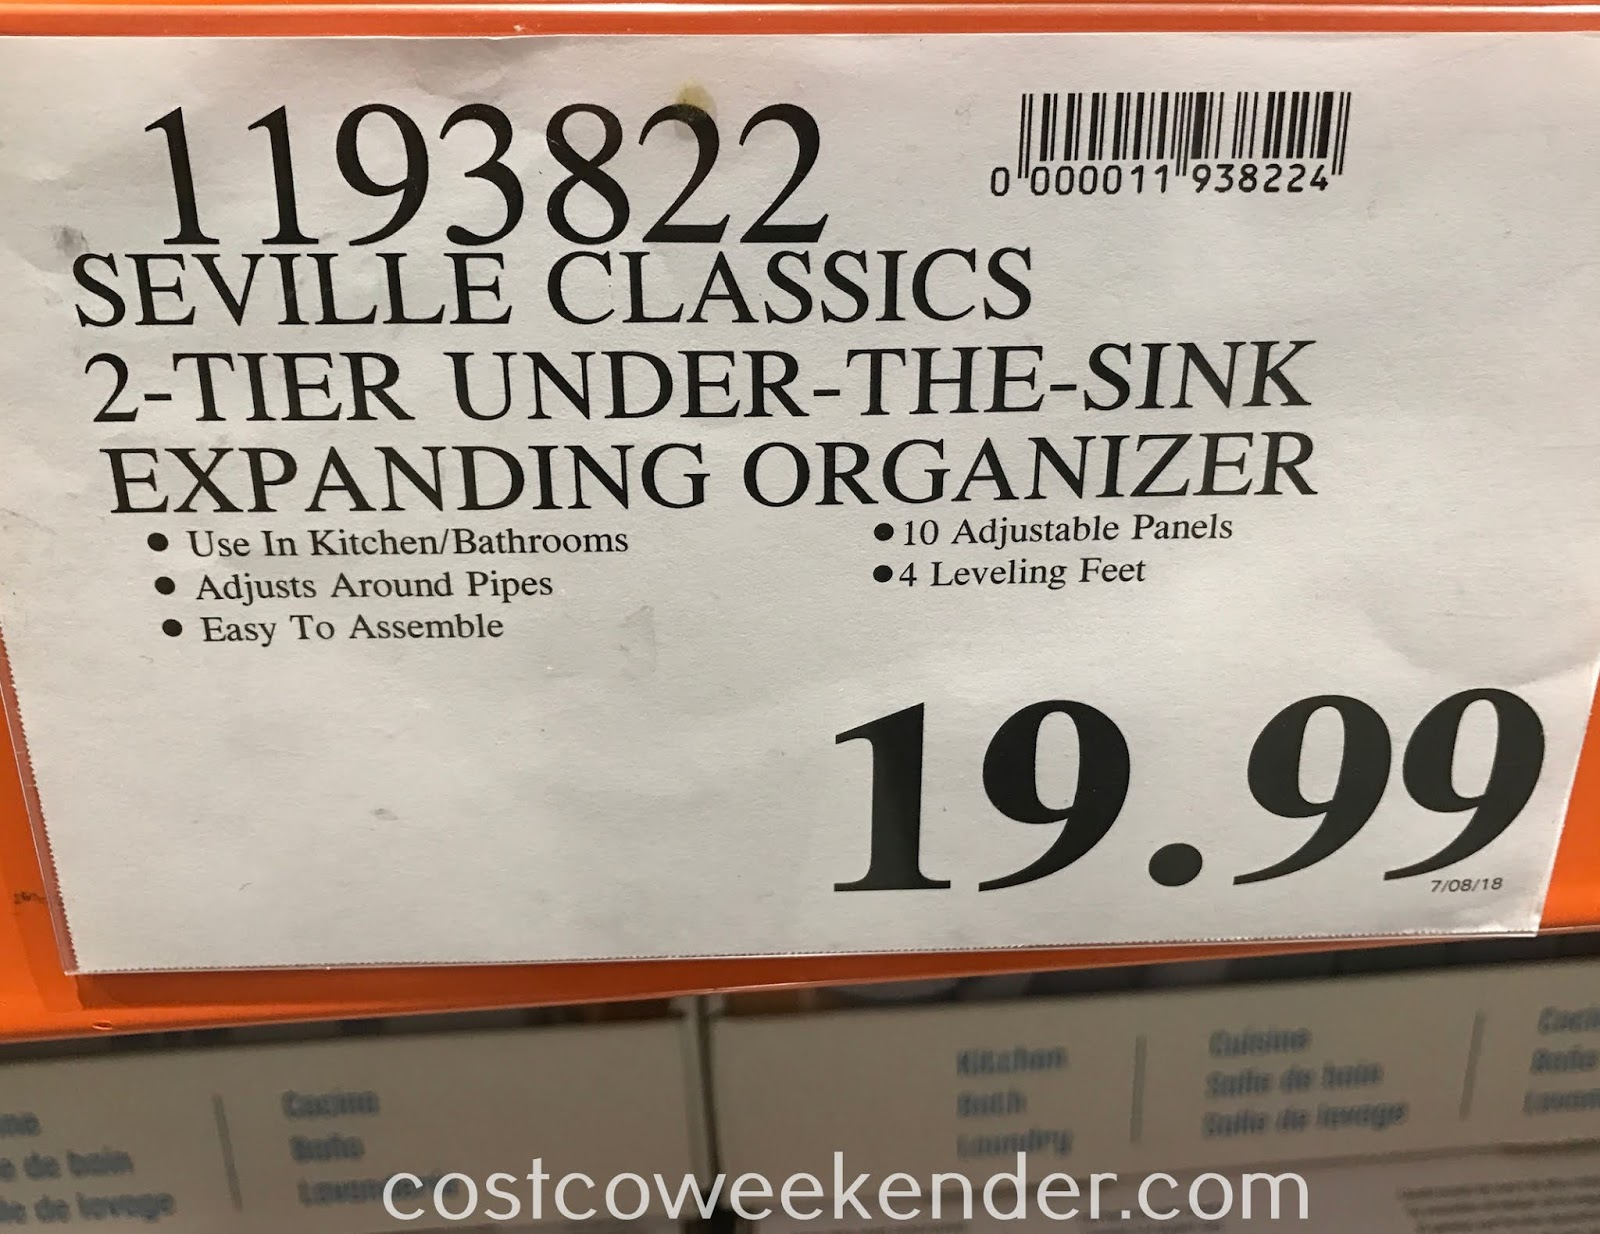 Deal for the Seville Classics 2-Tier Under-the-Sink Organizer at Costco